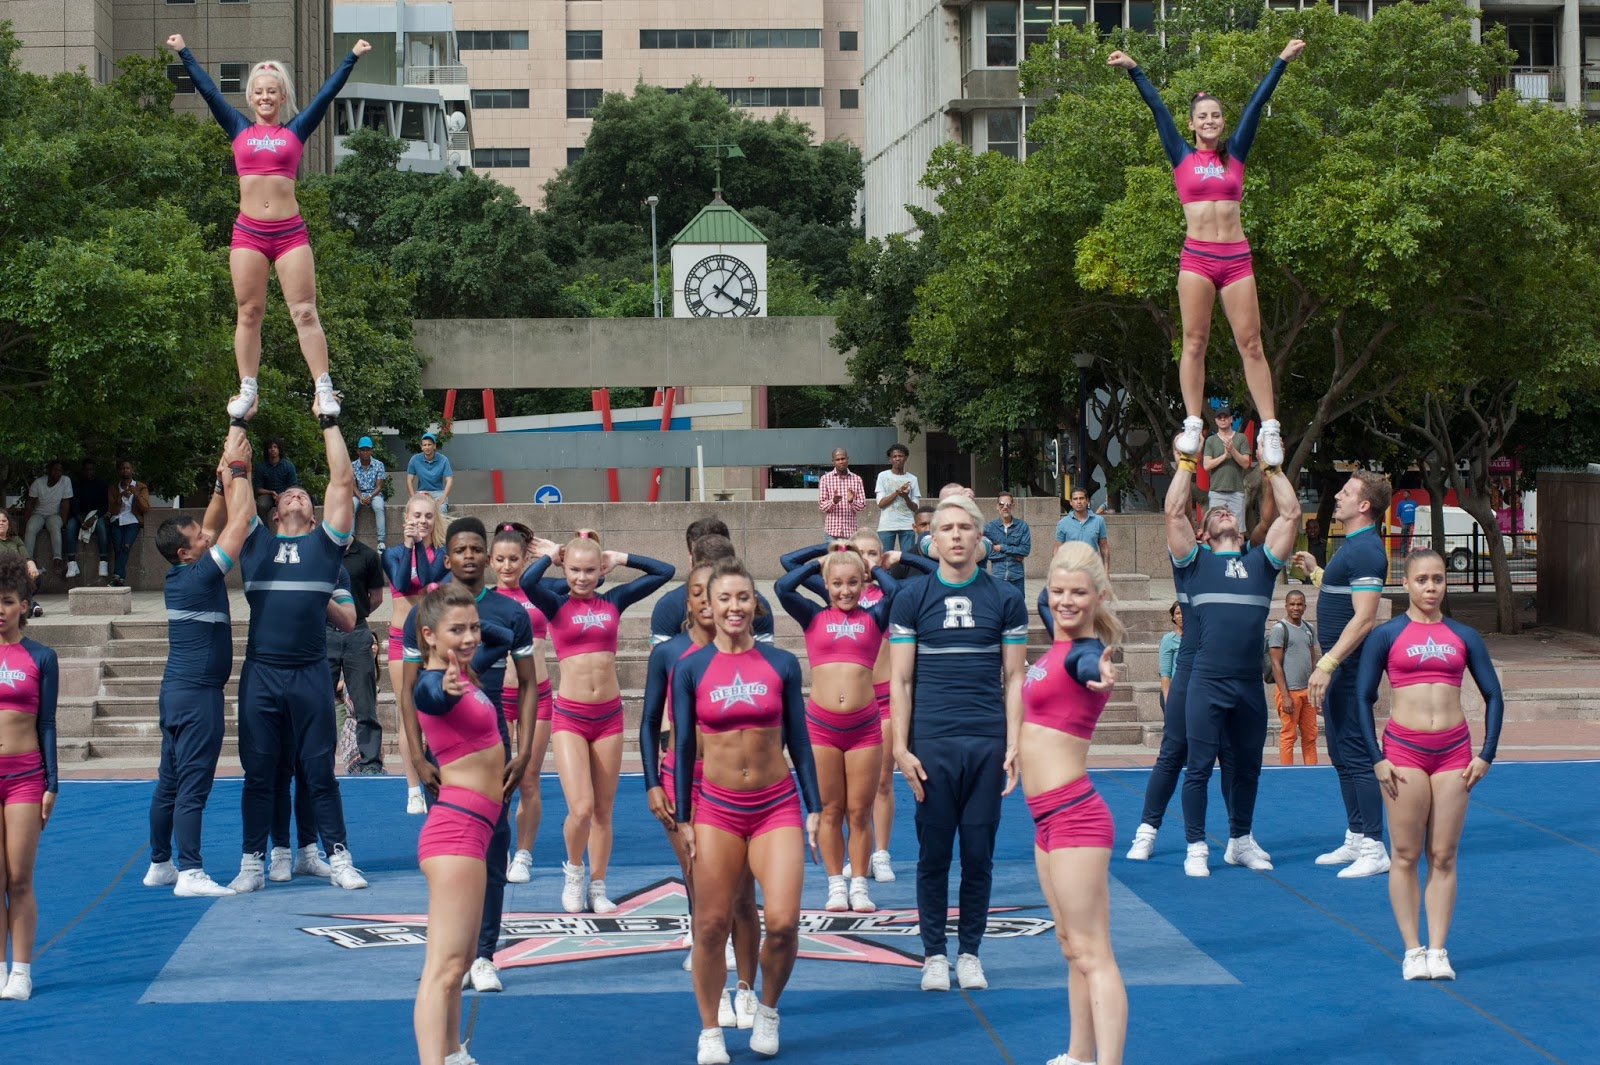 Bring it on worldwide full movie online free